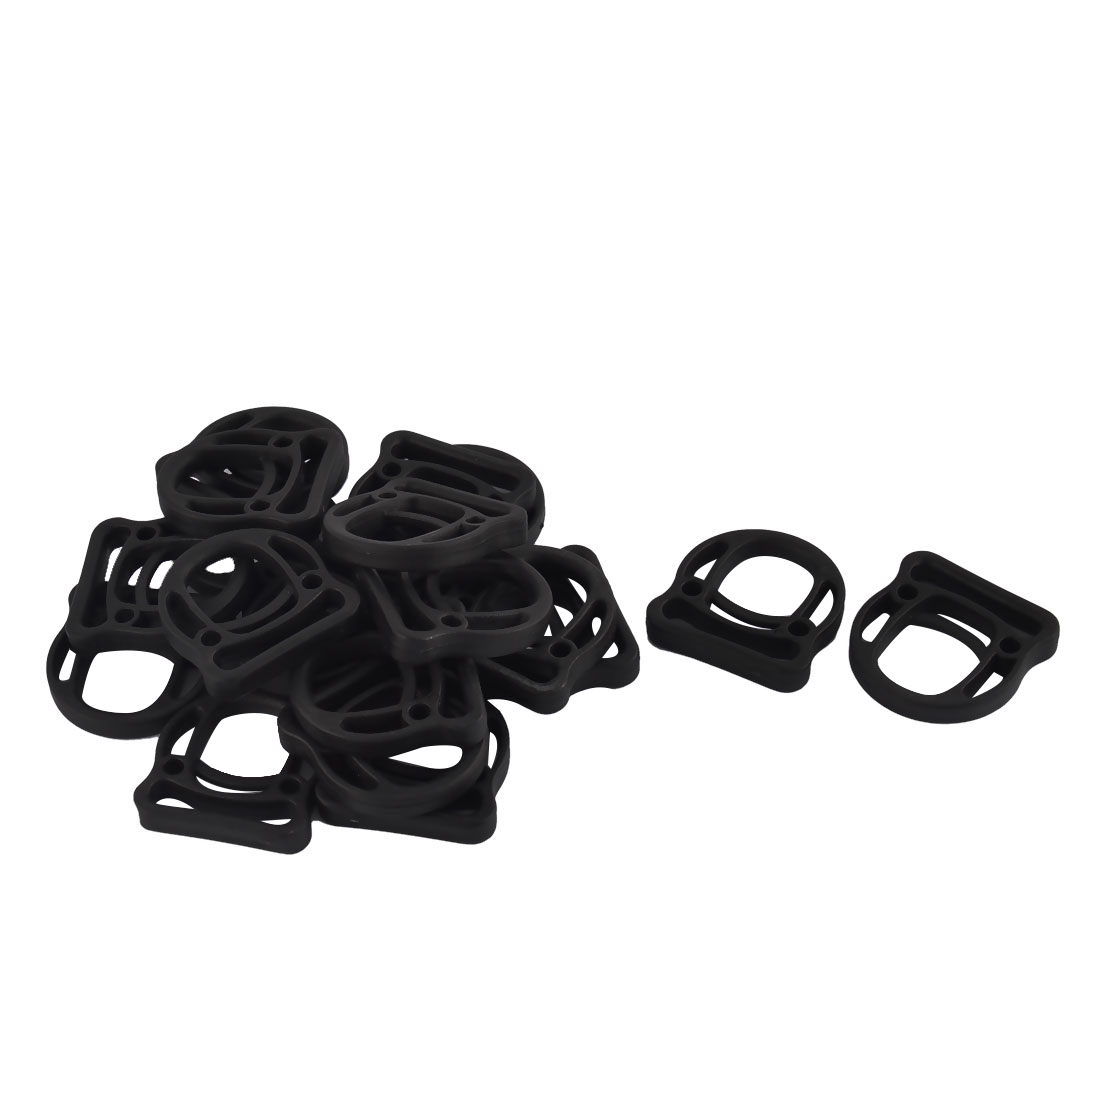 Backpack Plastic D Shaped Removable Belt Strap Bag Buckles Black 25mm 20pcs